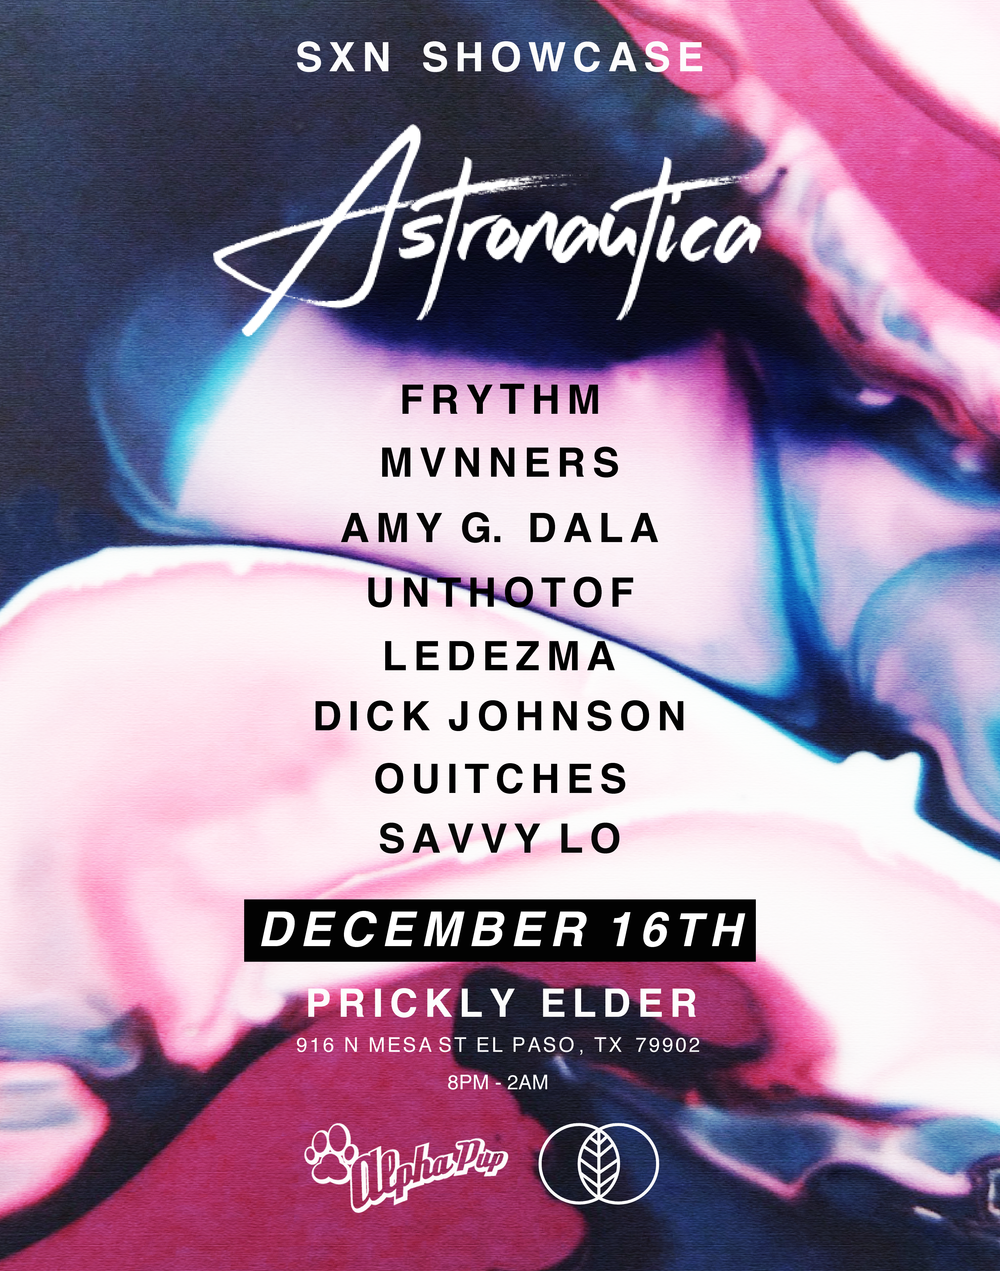 SXN Showcase @ Prickly Elder Special Guest: Astronautica (Alpha Pup Records) https://soundcloud.com/astronautica SXN Support:  mvnners https://soundcloud.com/mvnners Frythm https://soundcloud.com/frythm Amy G. Dala https://soundcloud.com/amyg_dala UNTHOTOF https://soundcloud.com/unthotof Ledezma https://soundcloud.com/mledezma Dick Johnson https://www.instagram.com/nosnhojjj/ ouitches https://www.instagram.com/ouitches/ Visuals by Savvy lo No Cover 21+